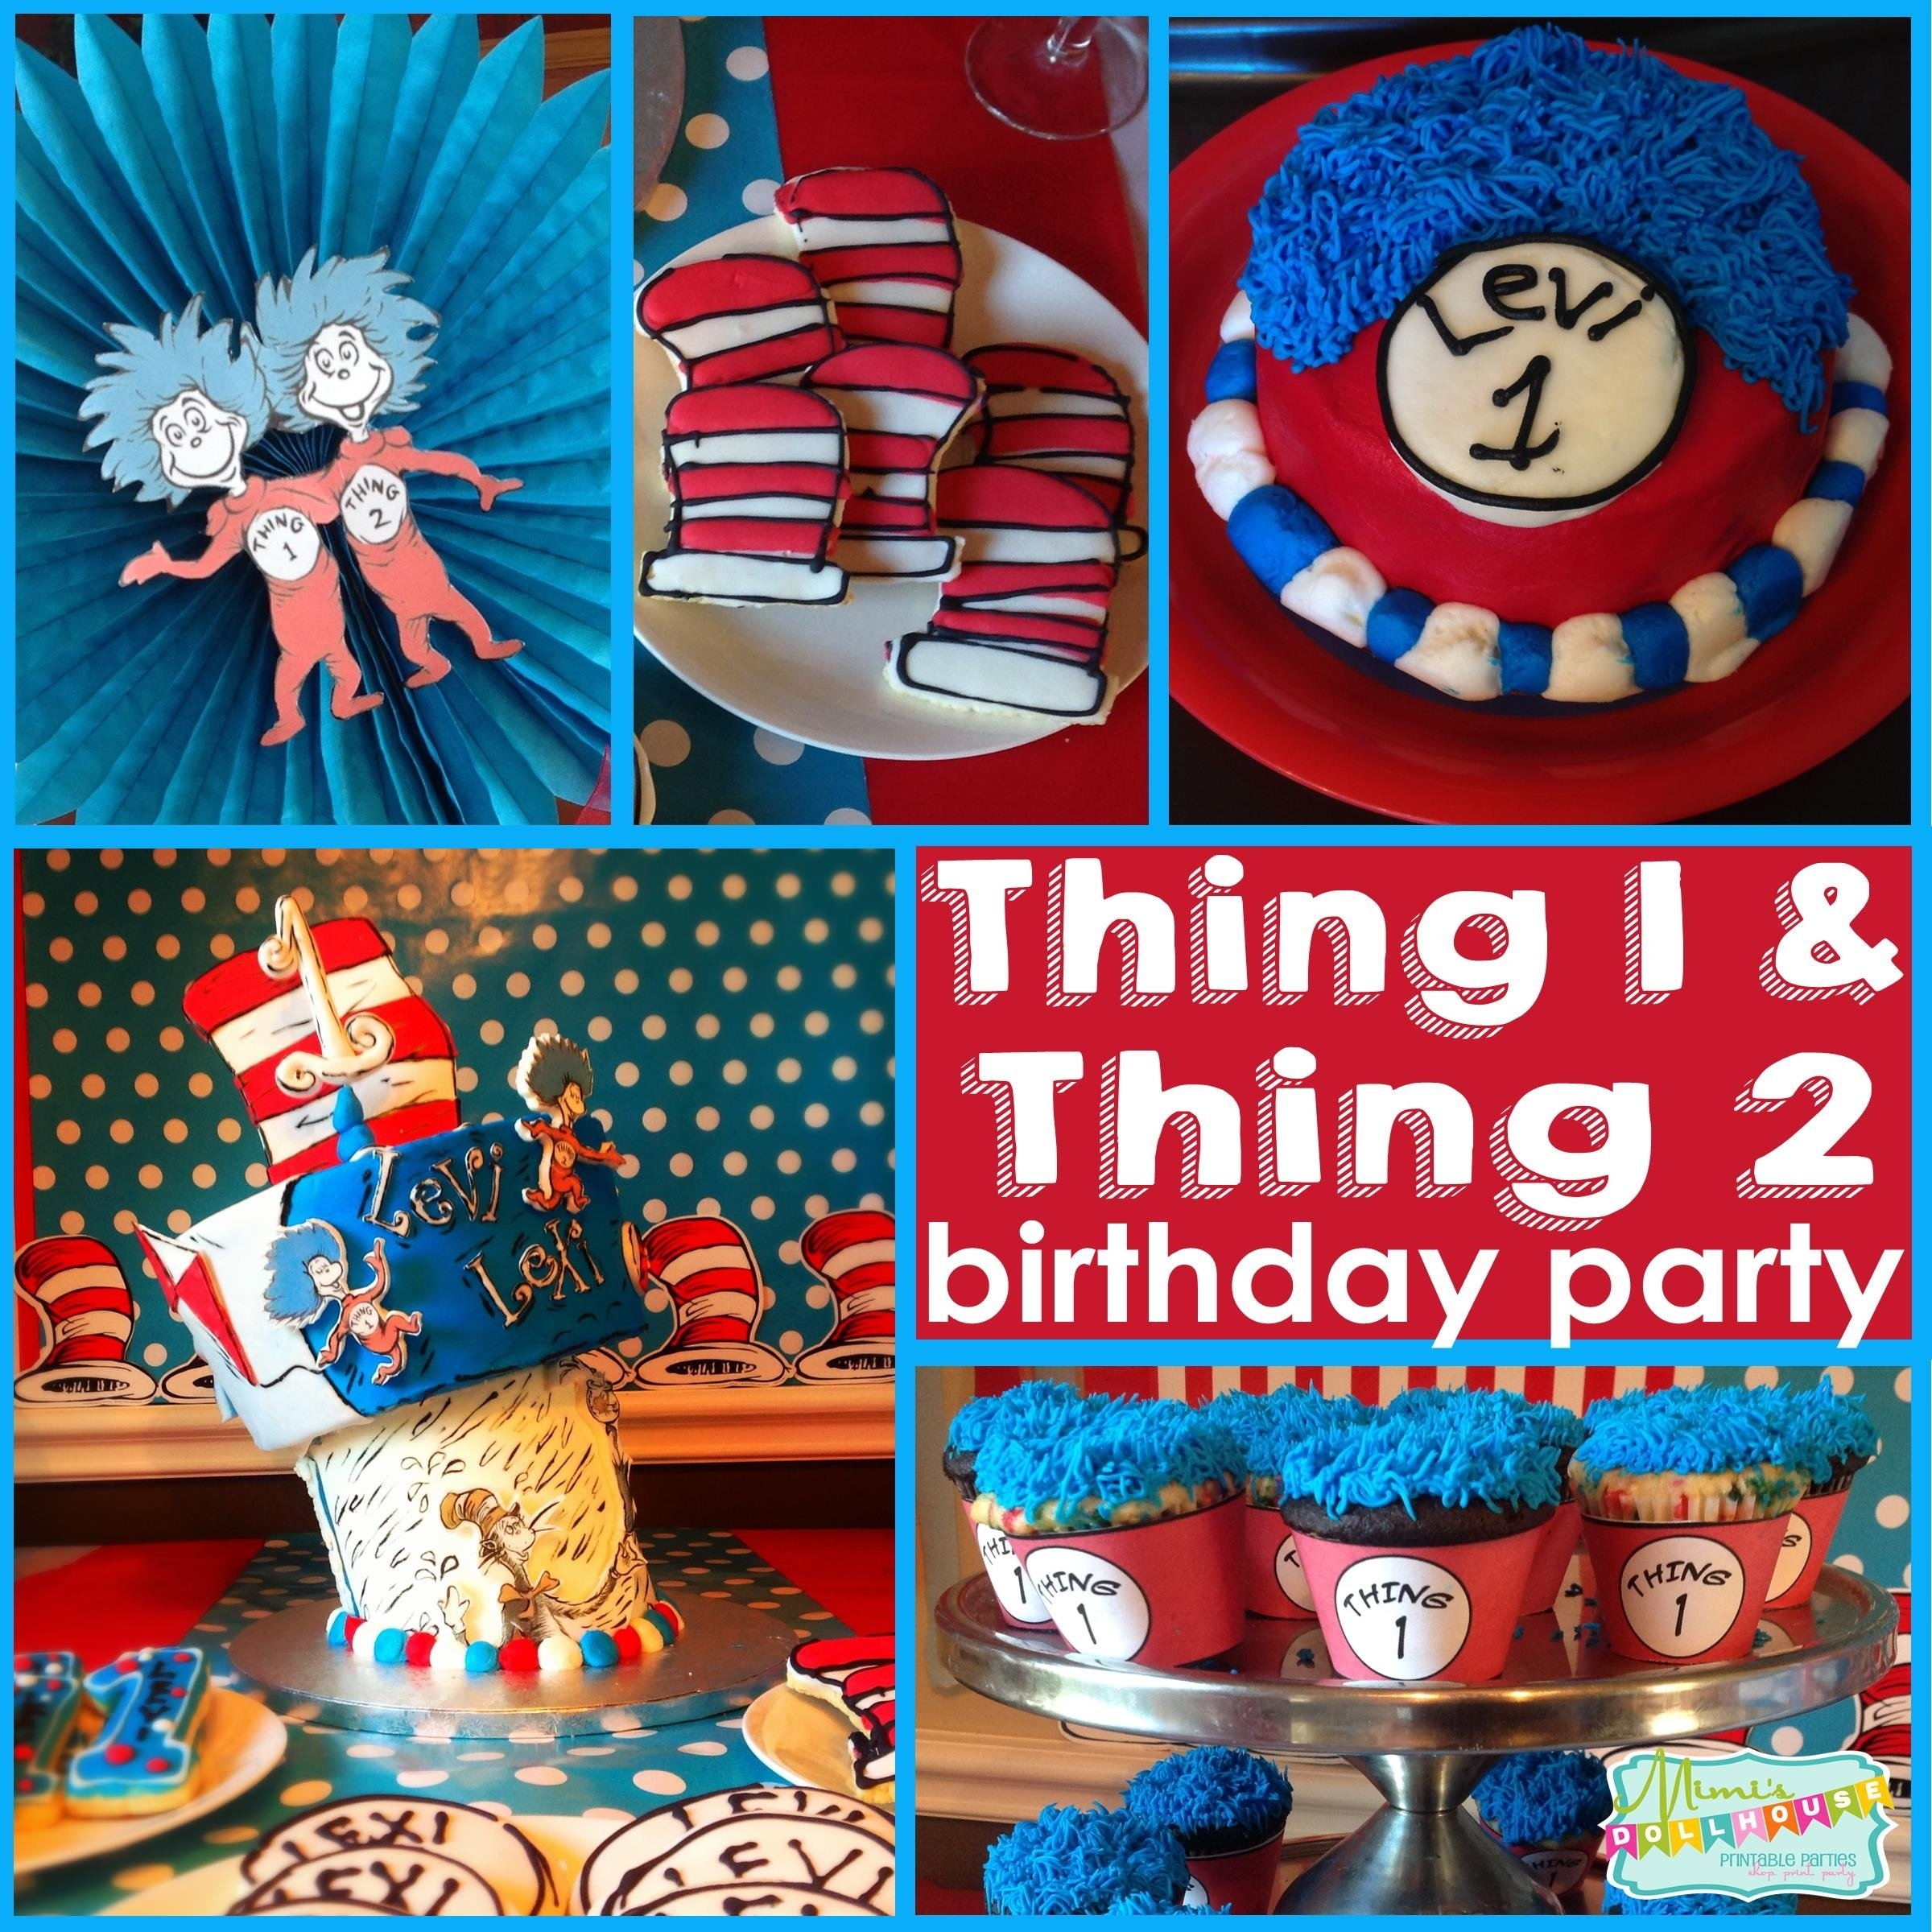 10 Trendy Thing 1 And Thing 2 Party Ideas thing 1 and thing 2 party twins first birthday party oh what fun 1 2020